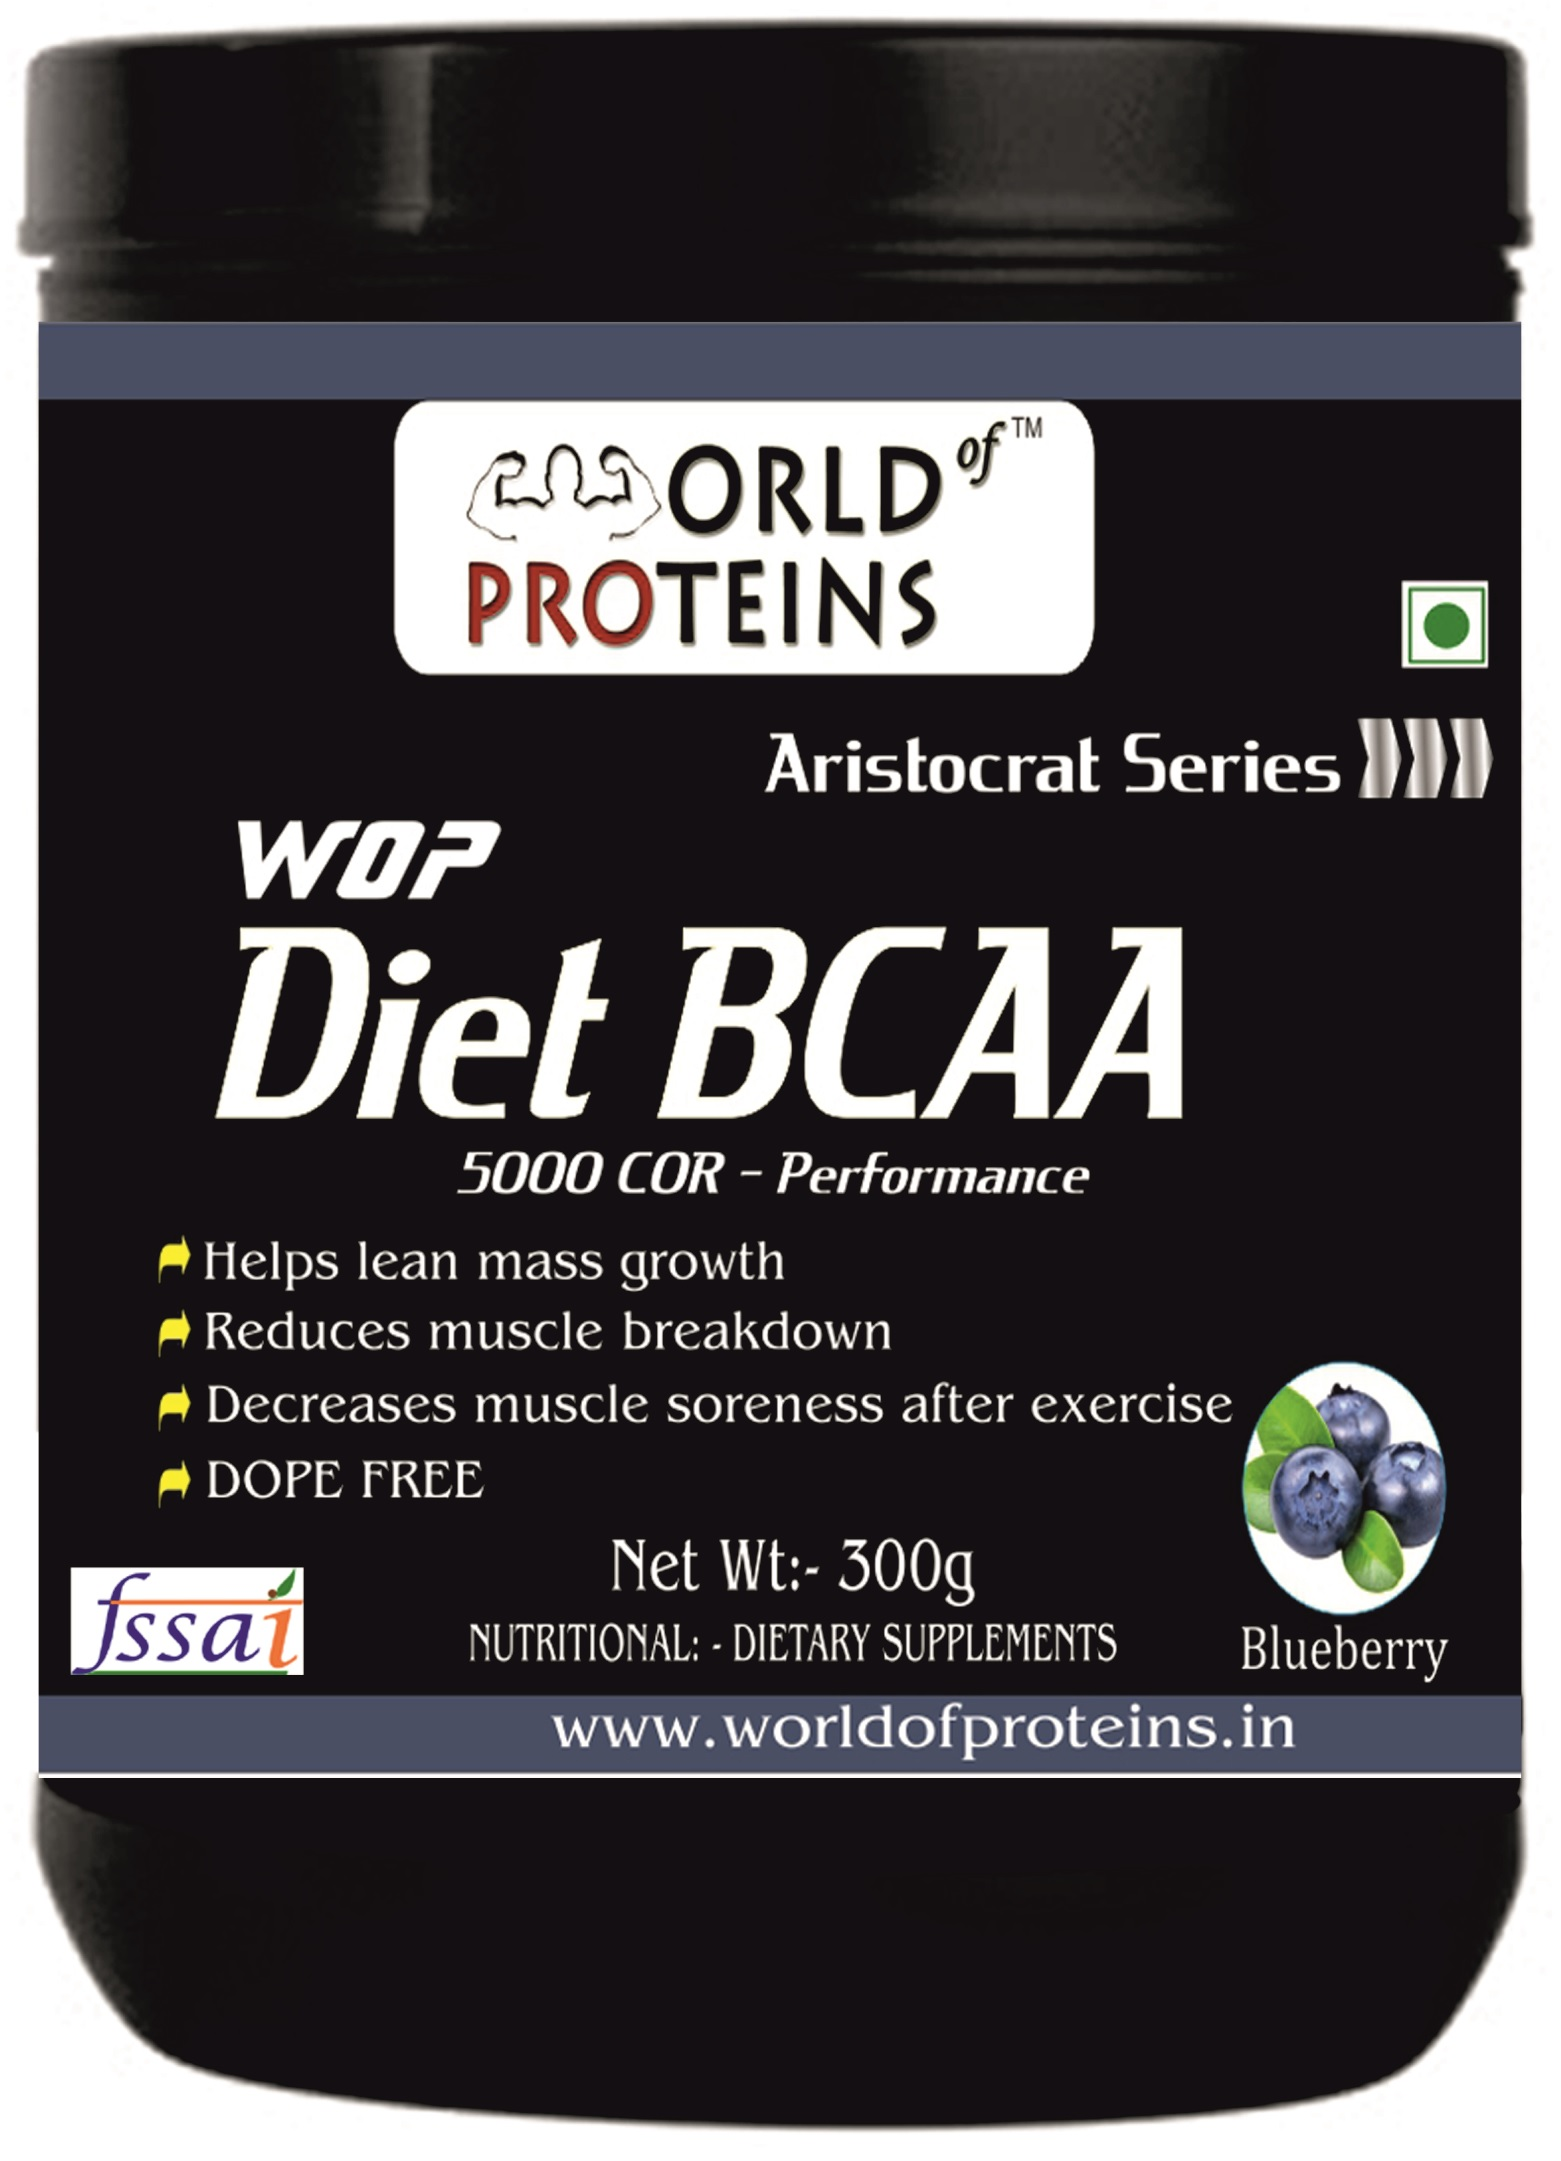 size_022010_WOP_Diet_BCAA_Blueberry.jpg